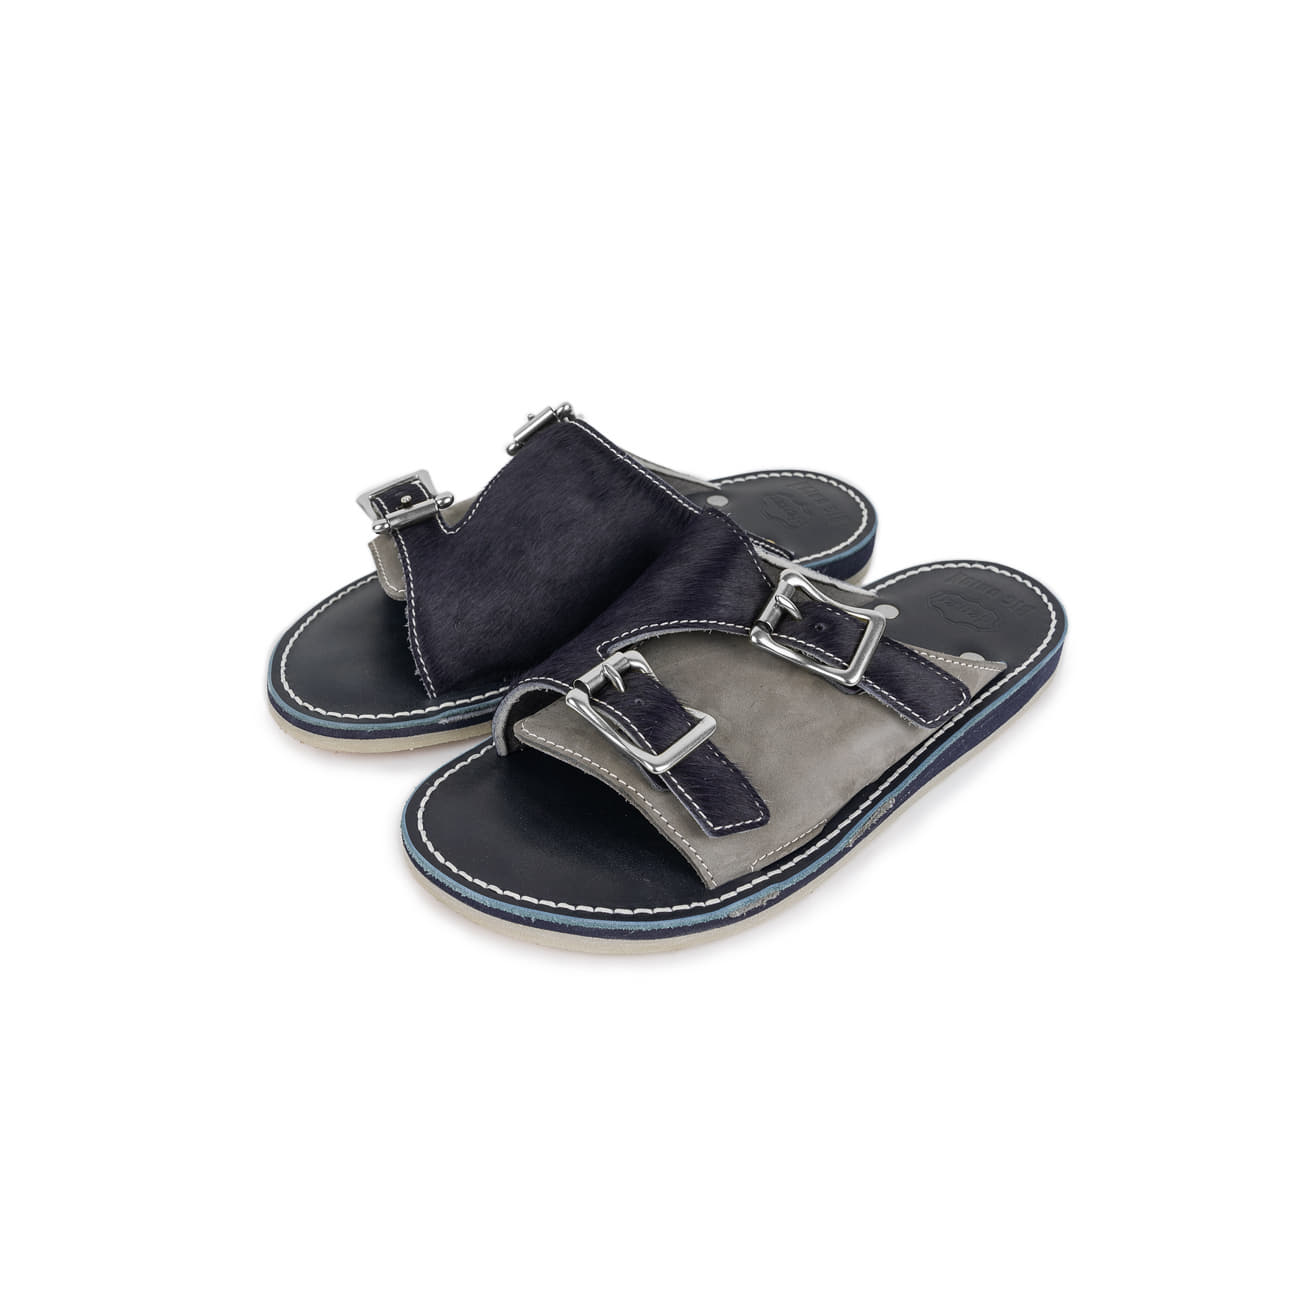 Nickel Buckle Sandal